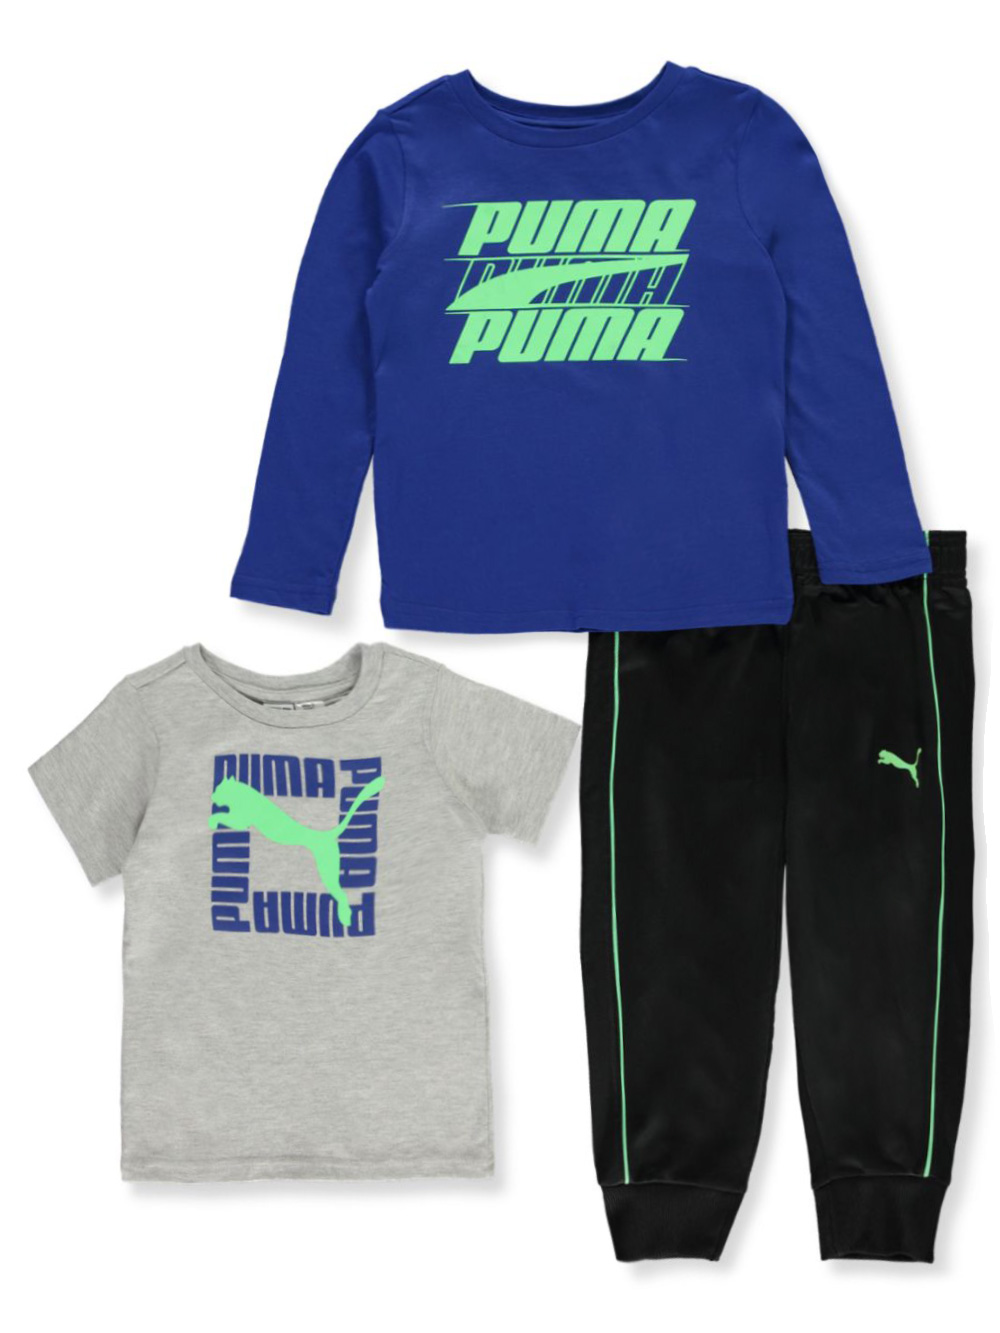 Boys' 3-Piece Pants Set Outfit